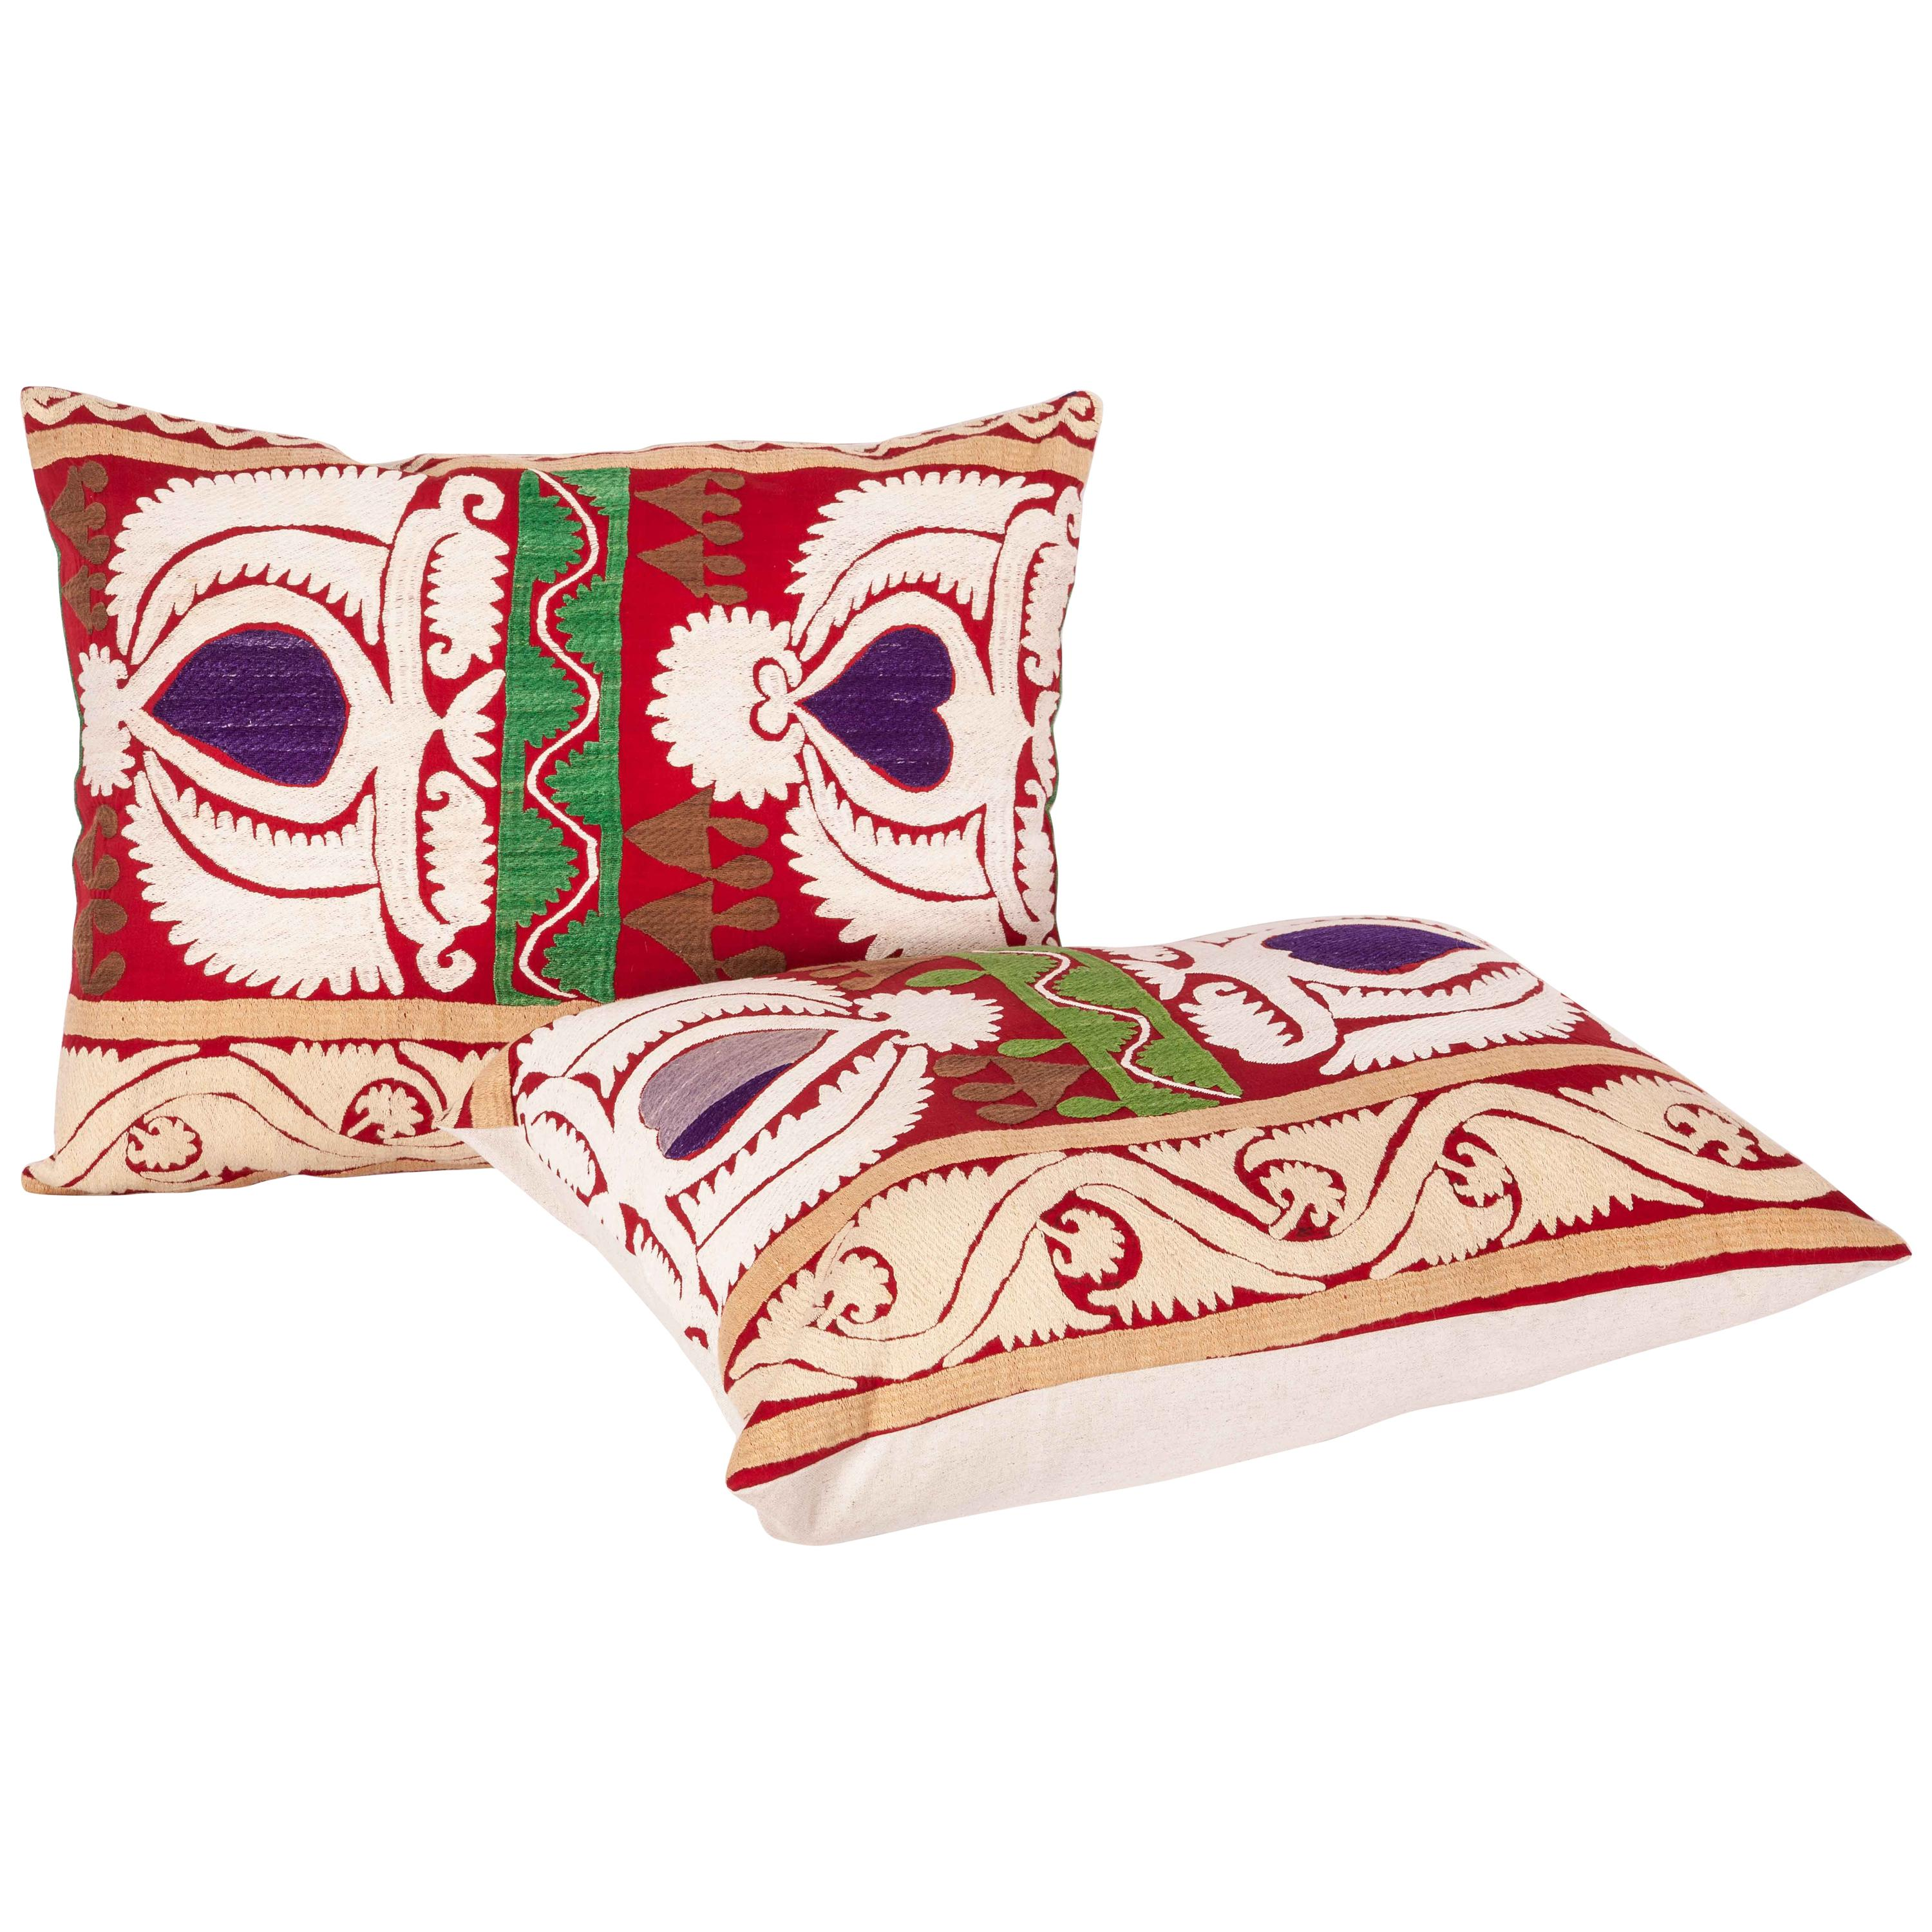 Vintage Suzani Pillow Cases, Cushion Covers, Mid-20th Century